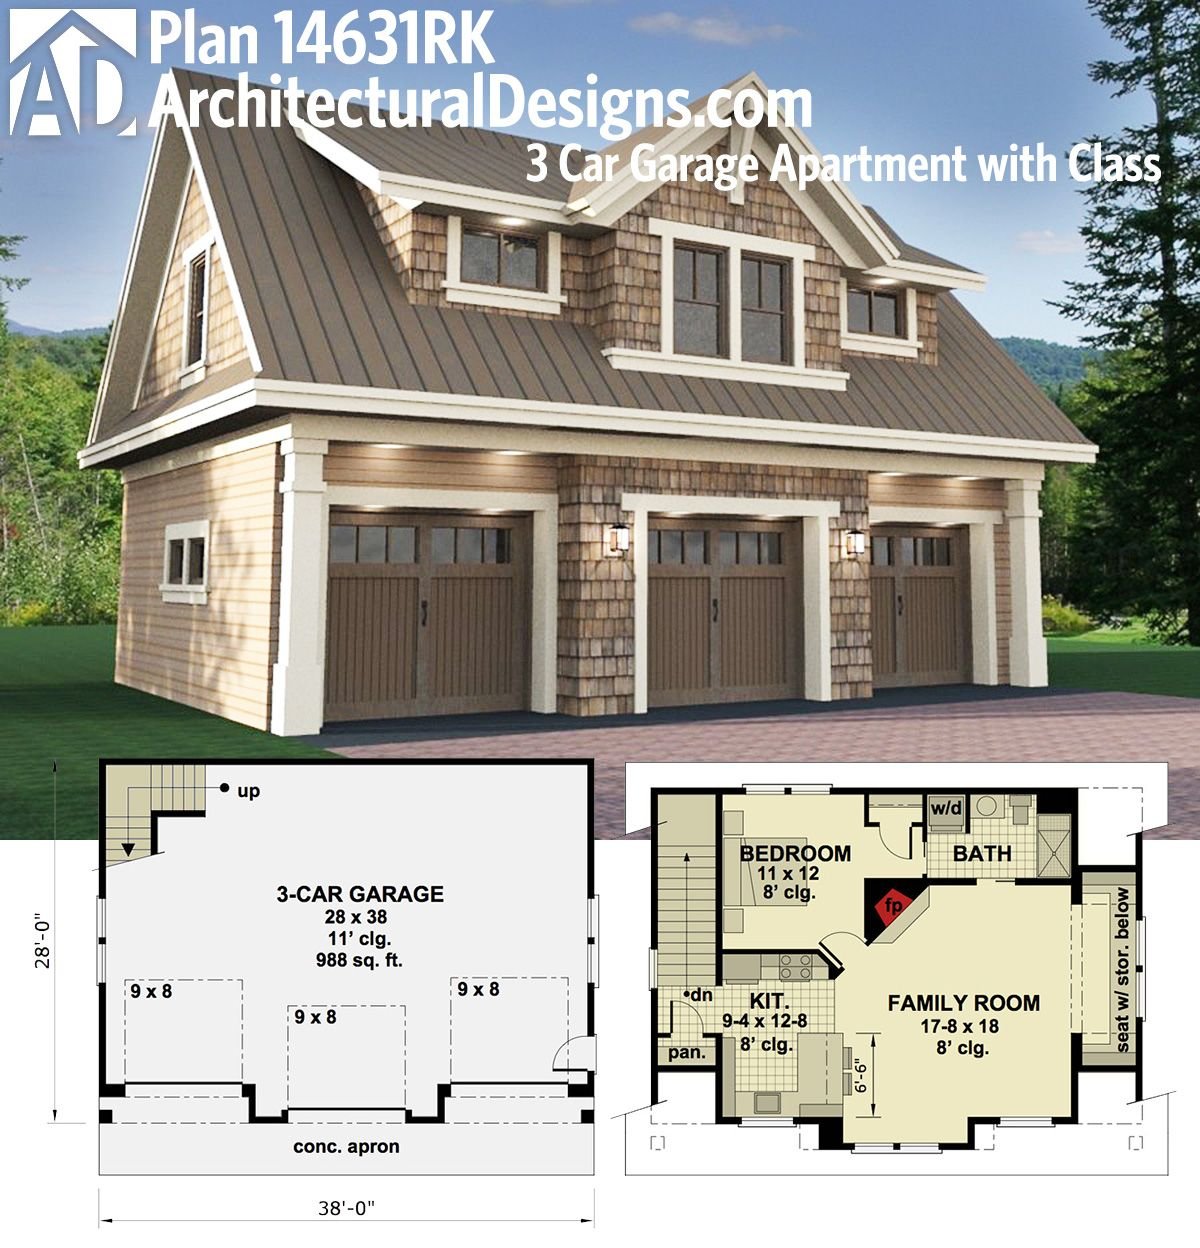 Plan 14631RK 3 Car Garage Apartment with Class – 3 Car Garage Plans With Loft